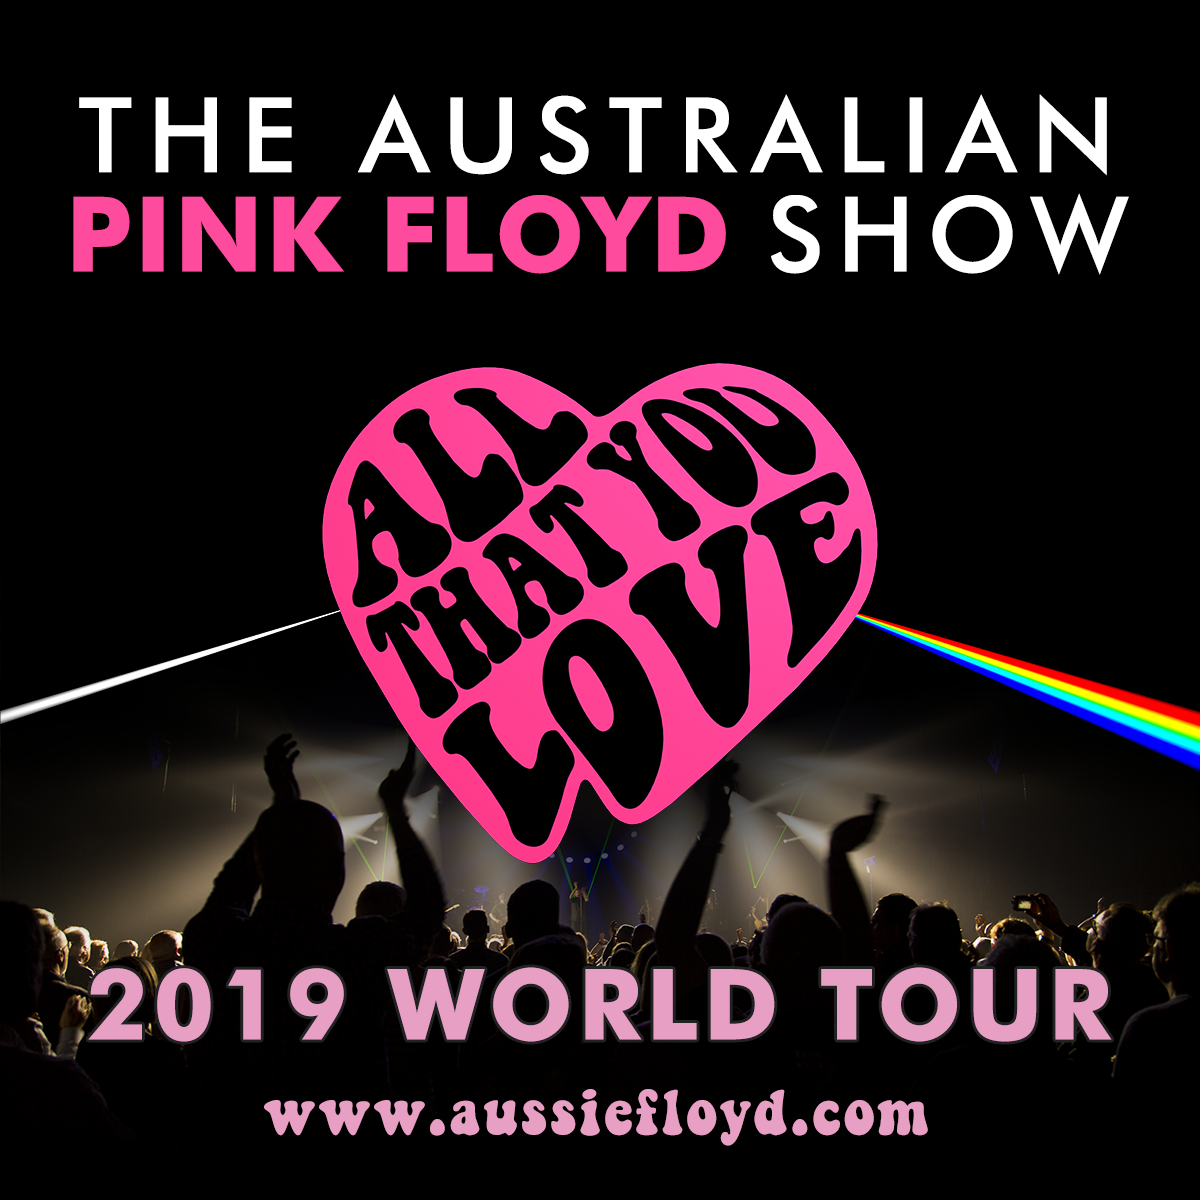 Tickets To The Concert Best Music The Australian Pink Floyd Show All That You Love Pink Floyd Concert Pink Floyd Poster